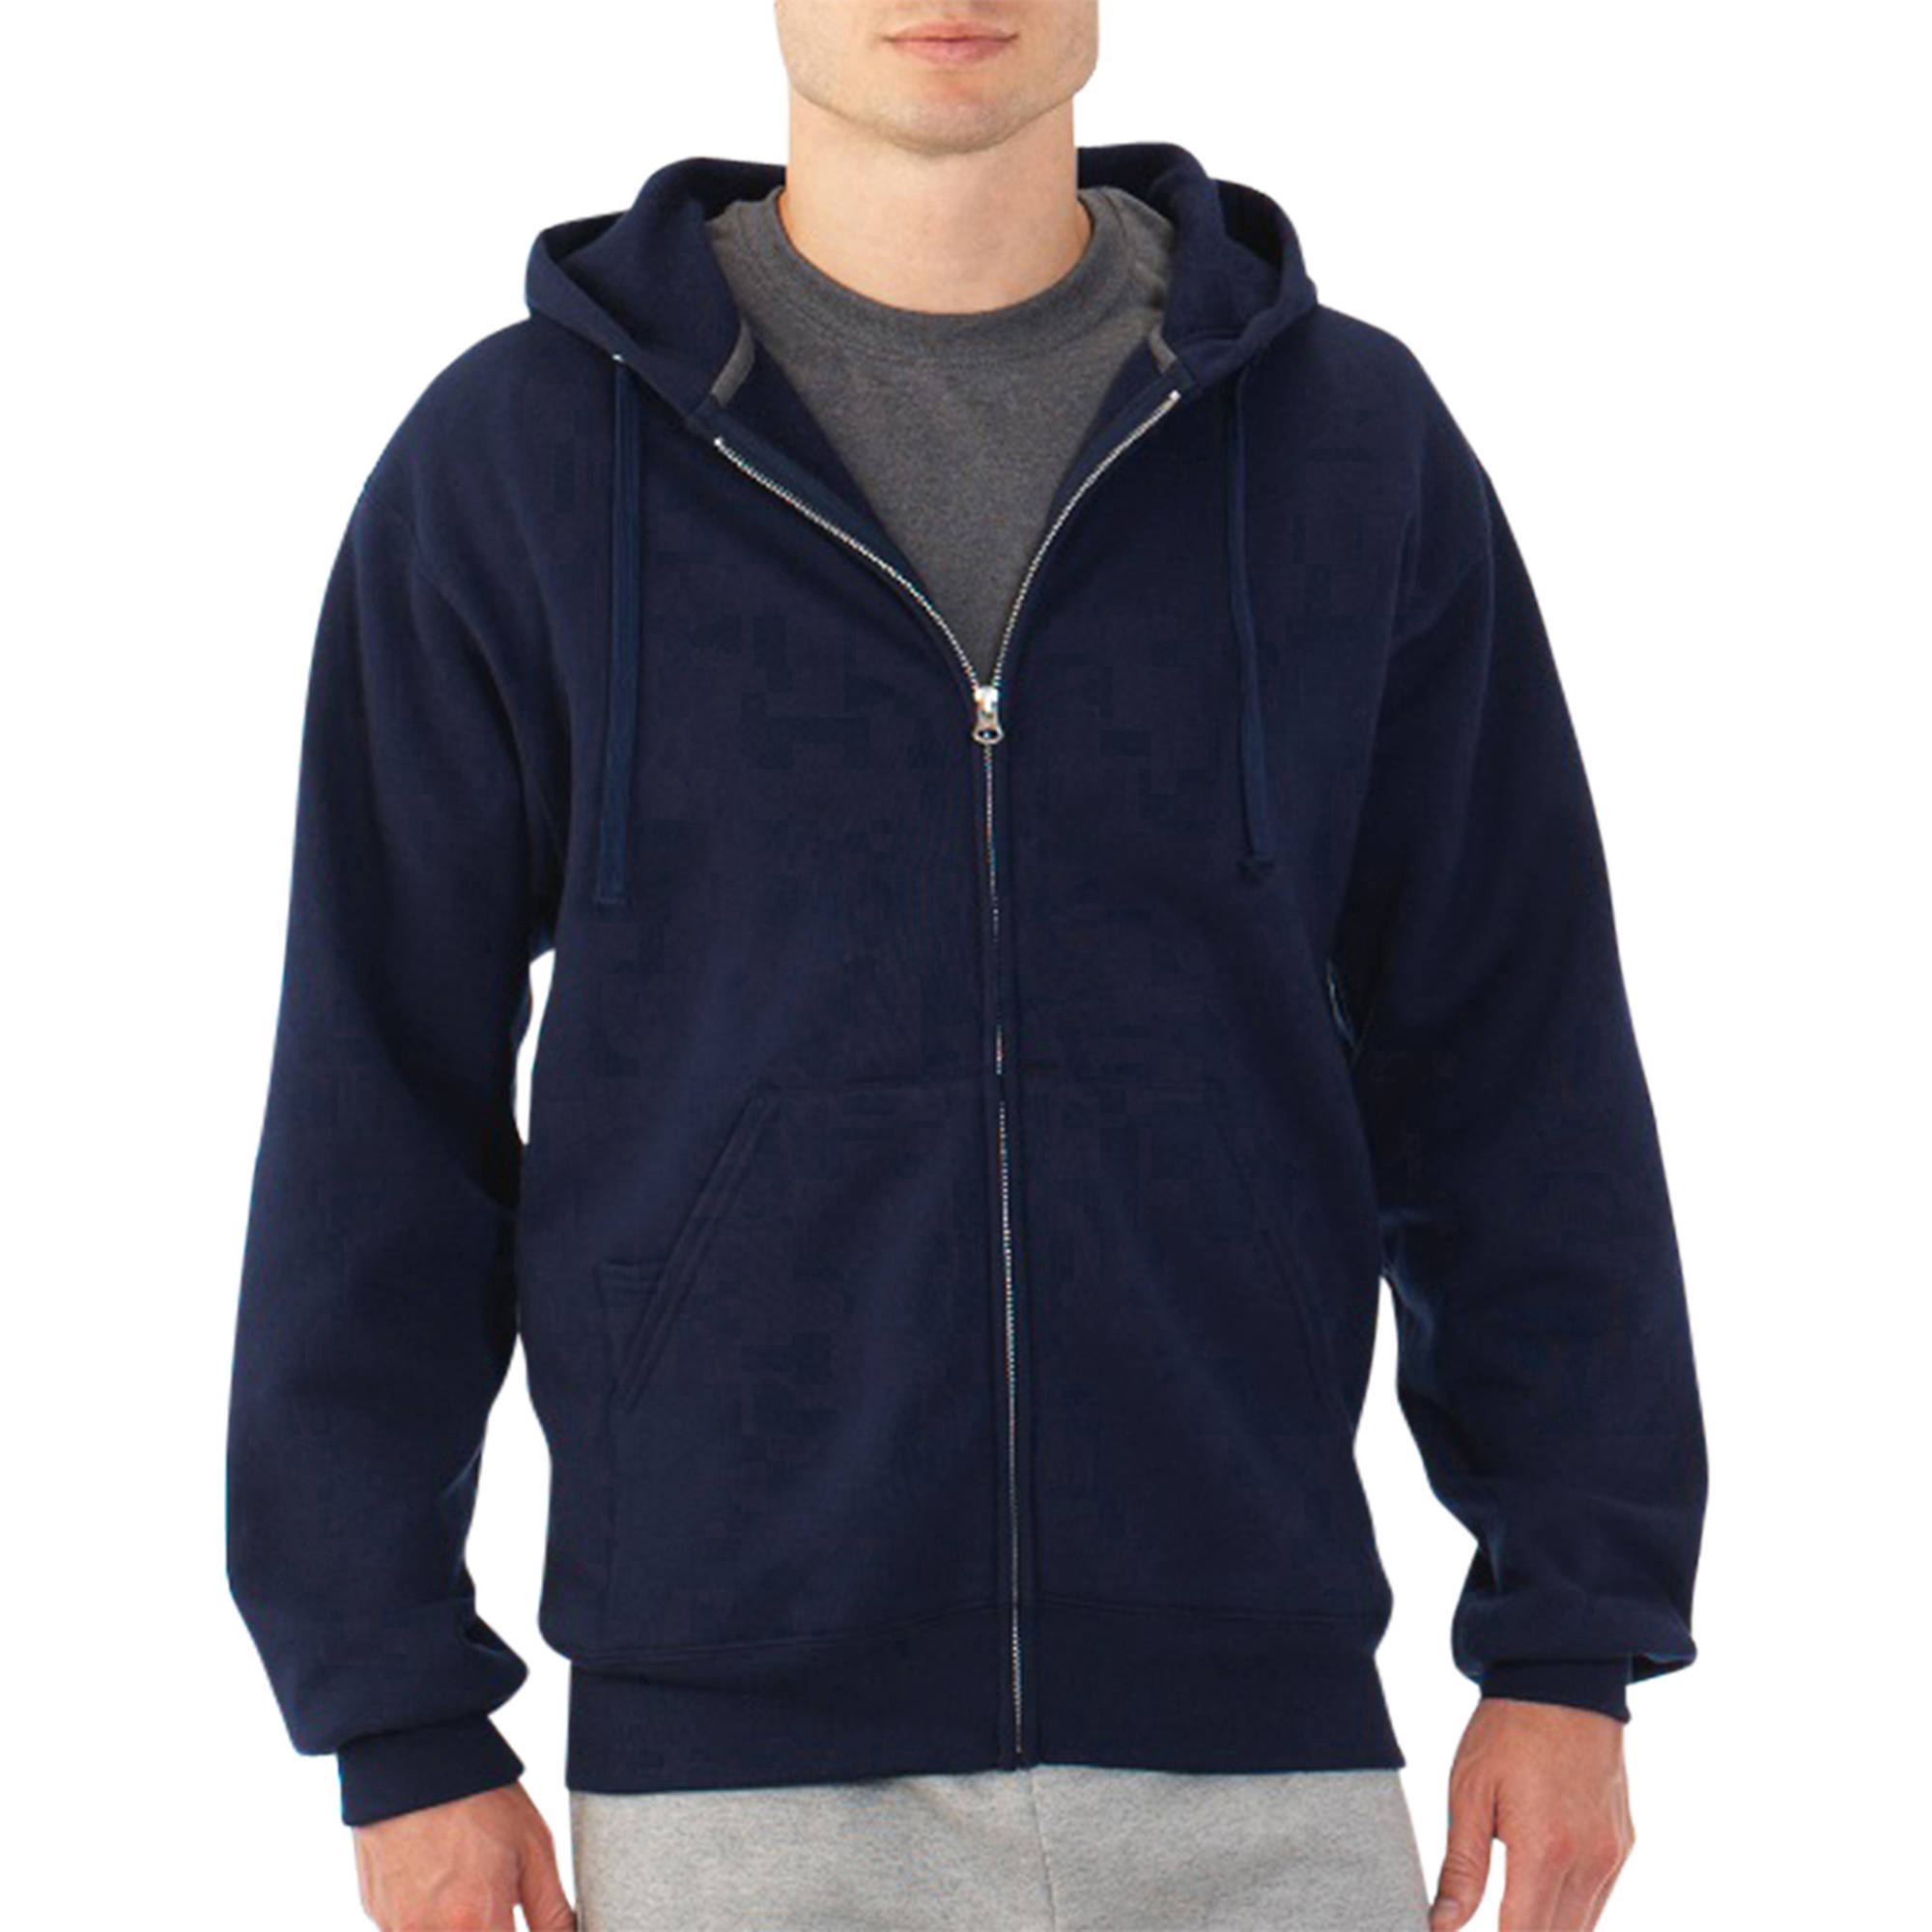 Men's Fleece Full Zip Hooded Sweatshirt